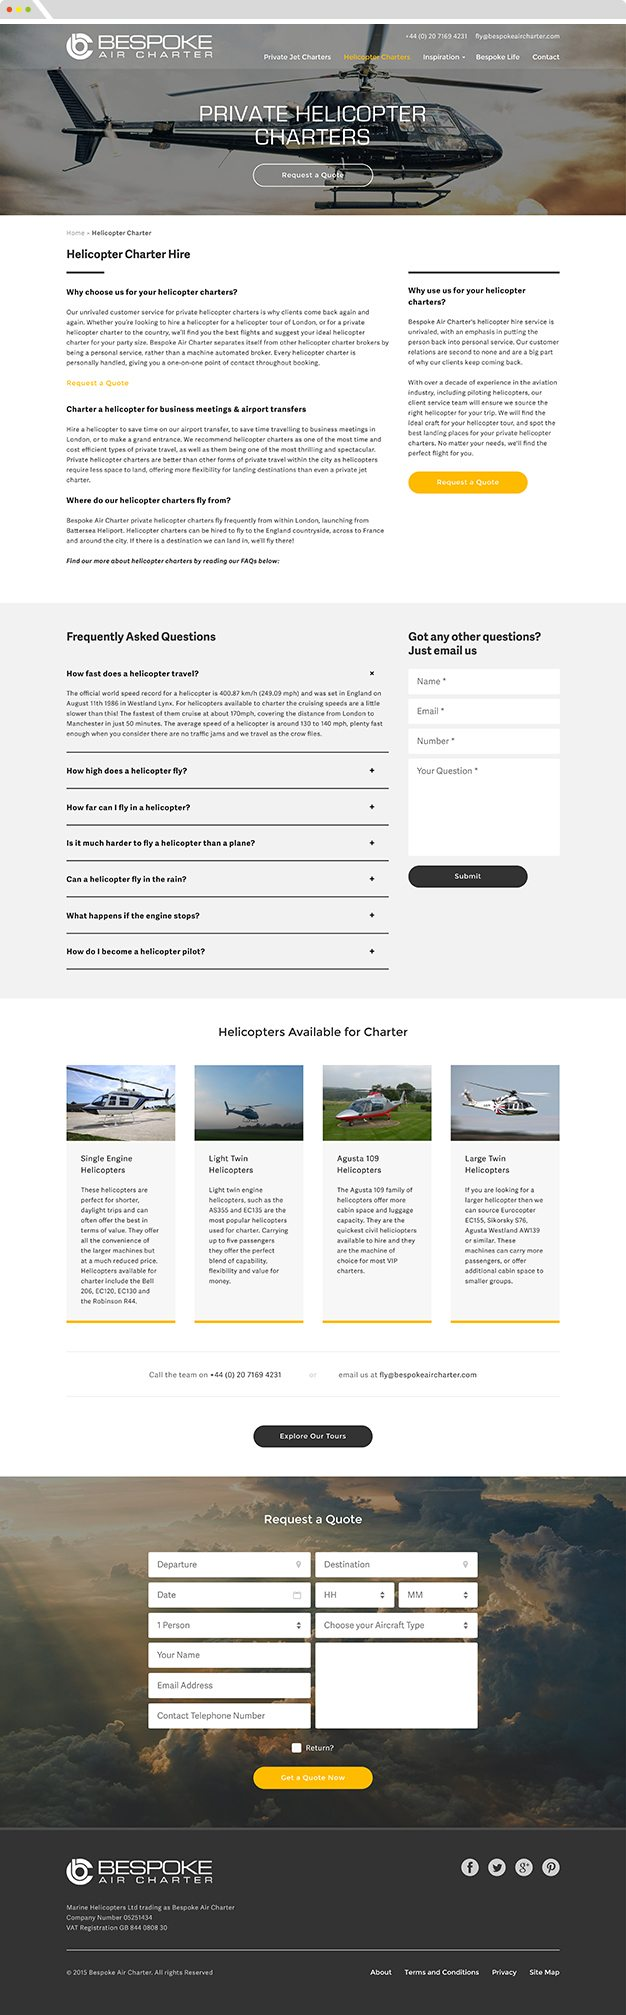 bespoke-air-charter-helicopter